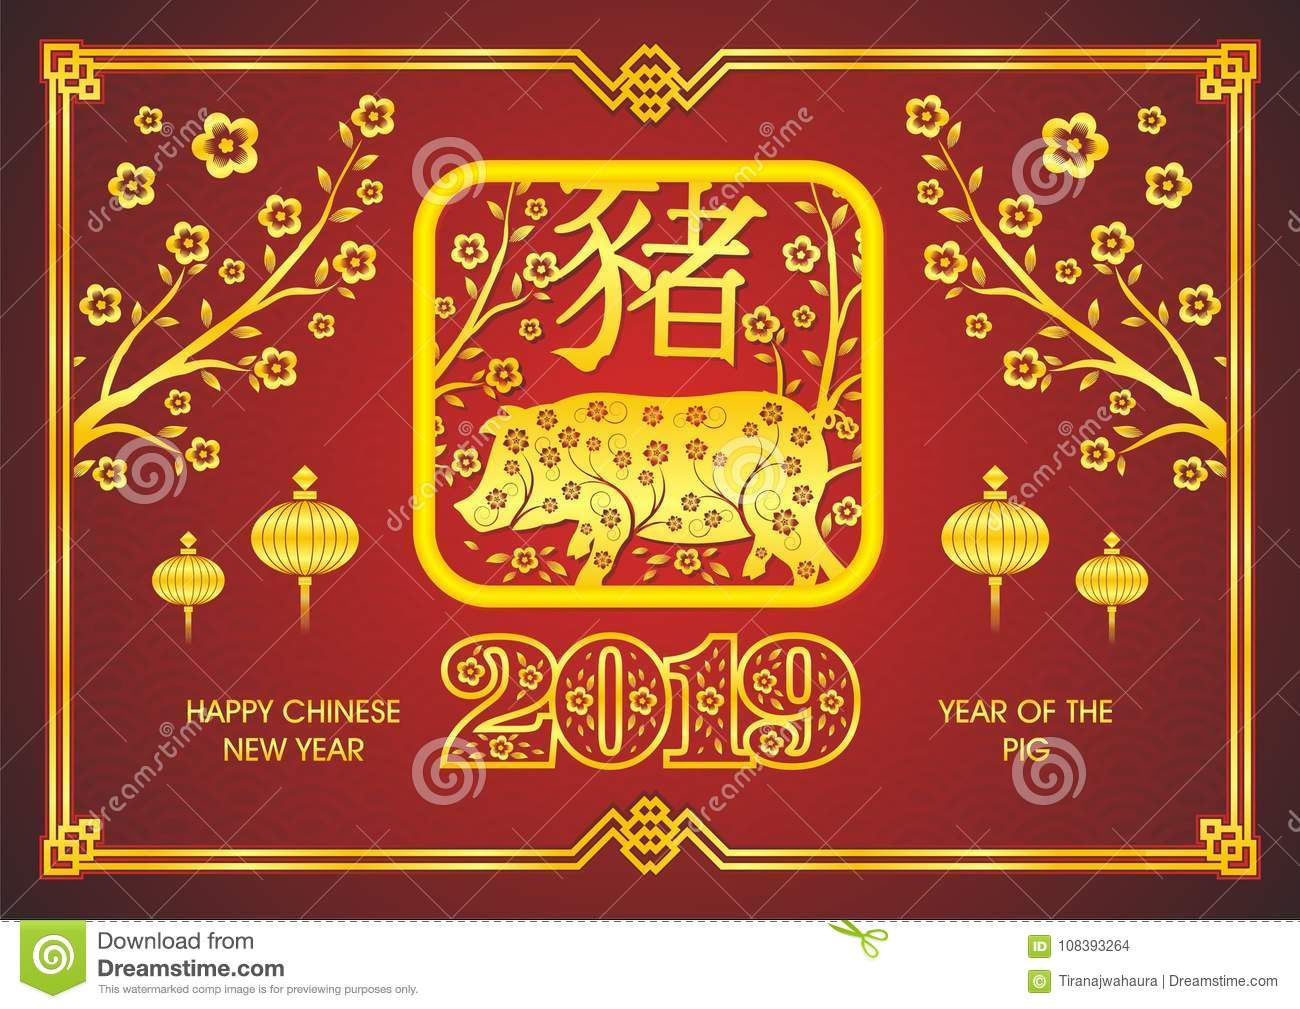 Year Of The Pig 2019 Chinese New Year Stock Vector Illustration